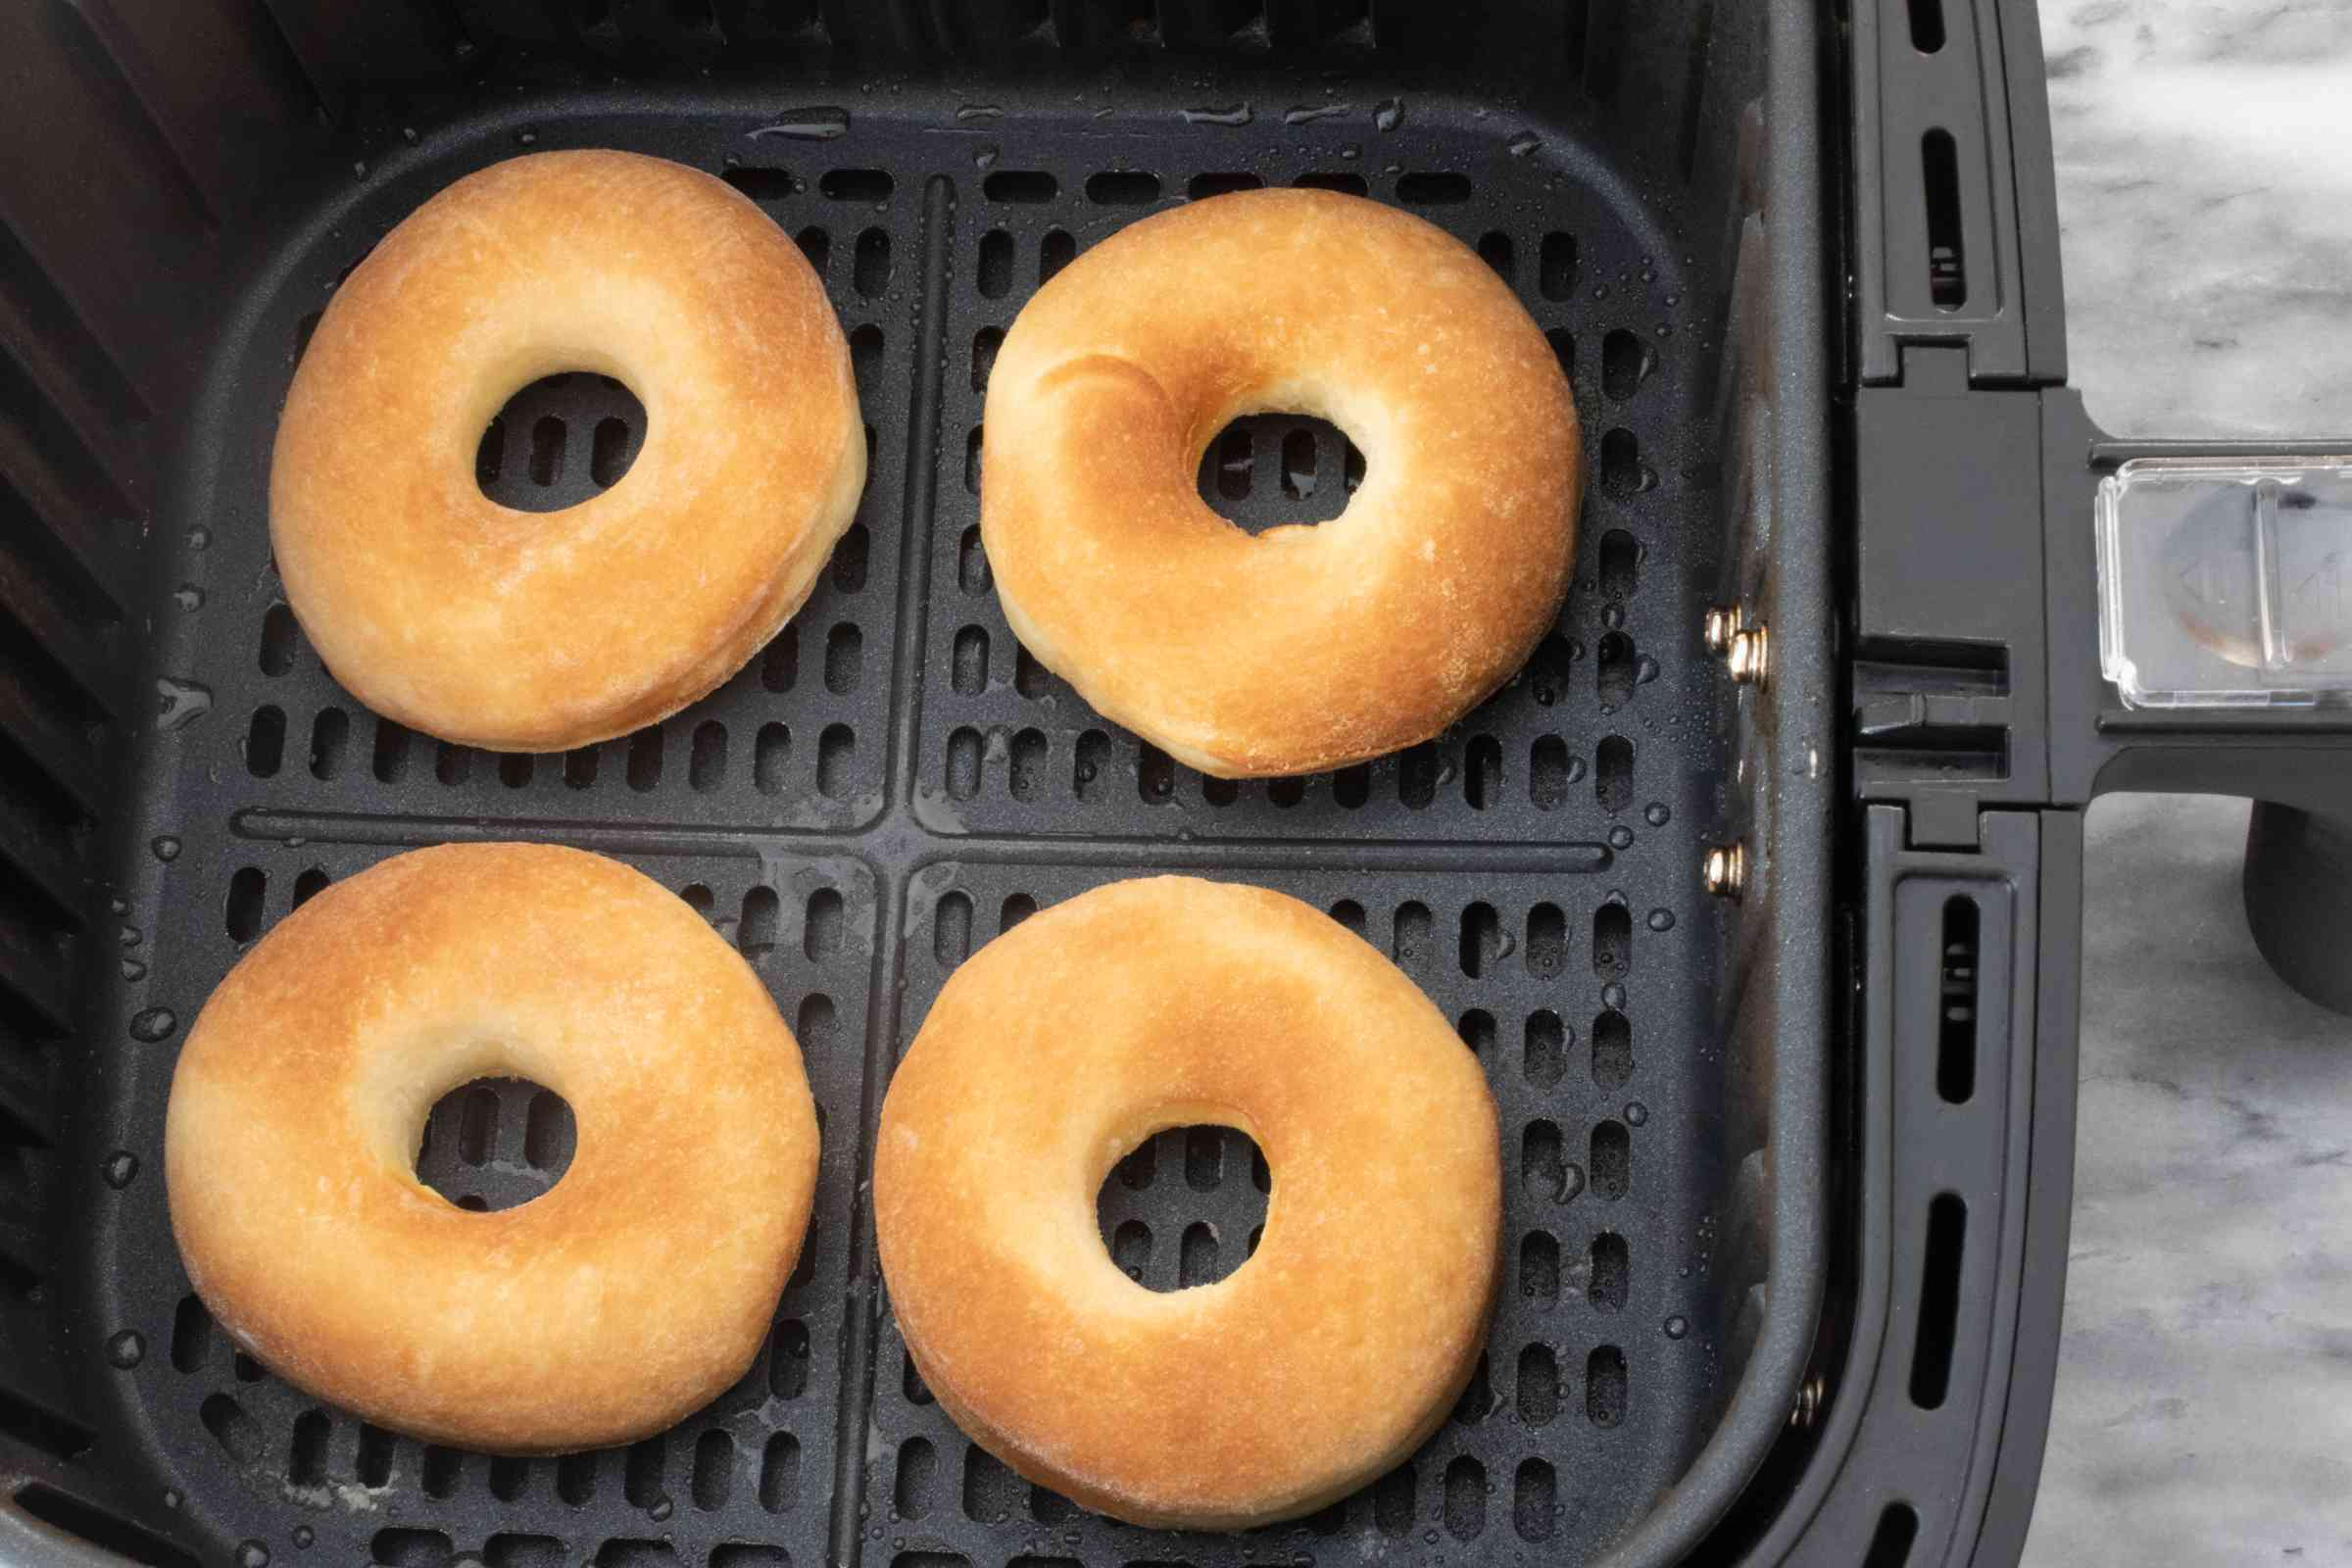 Cooked doughnuts in the air fryer basket